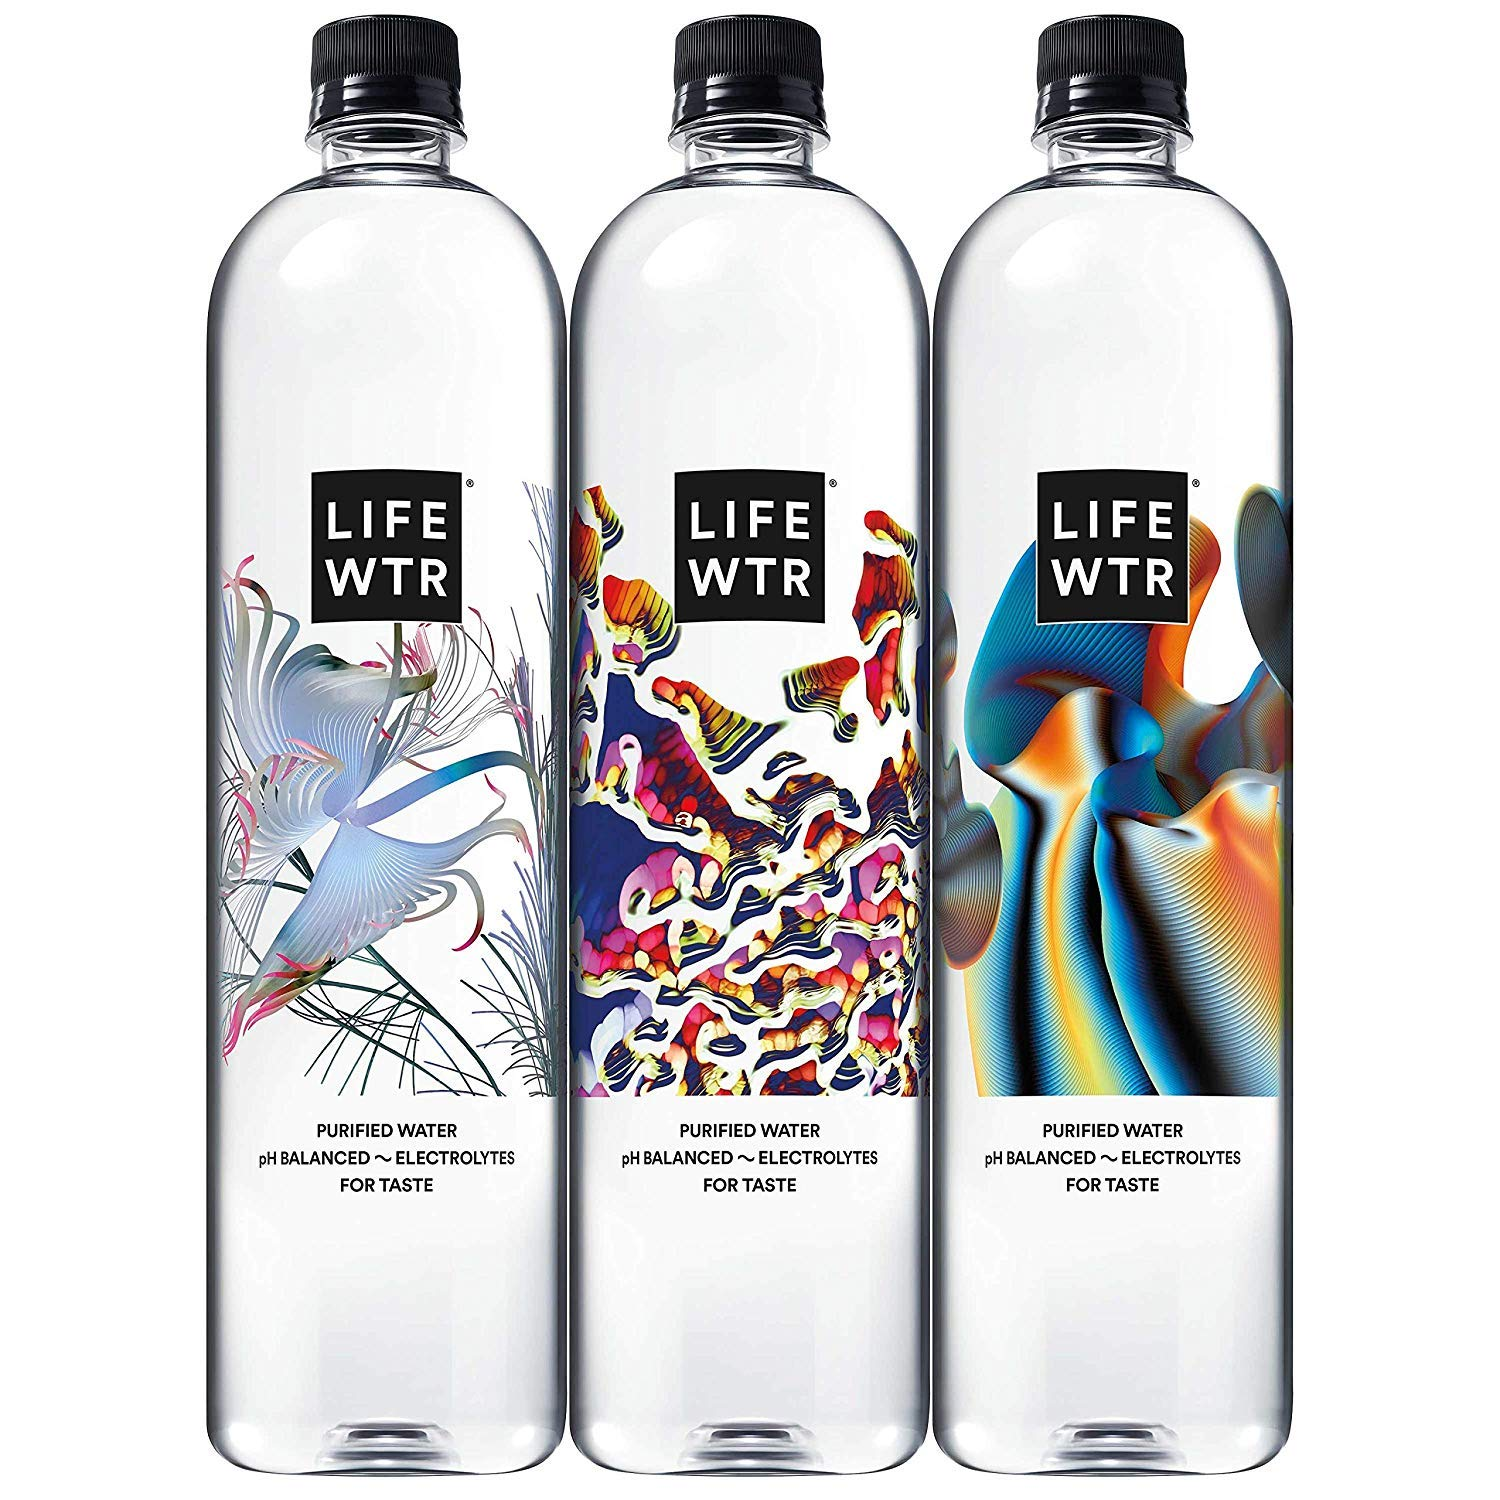 LIFEWTR, Premium Purified Water, pH Balanced with Electrolytes For Taste, 1 liter bottles (25 Pack) (Packaging May Vary) (25 pack) by LIFEWTR